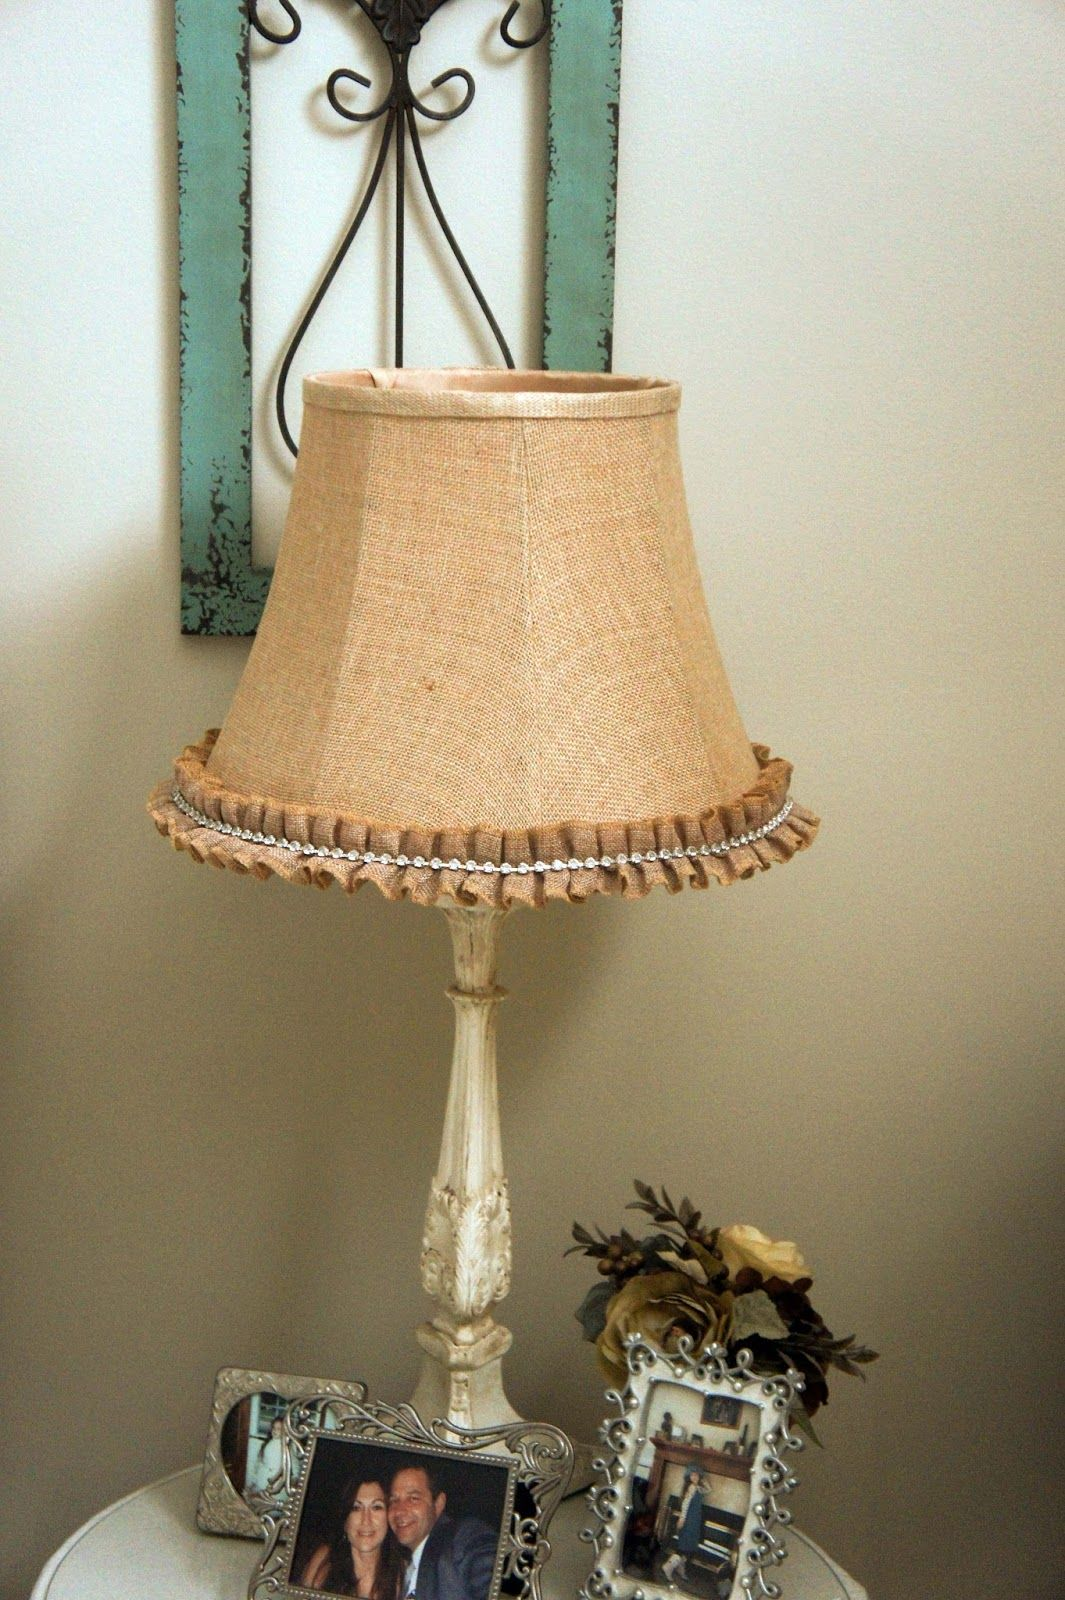 Hobby Lobby Lamp Shades Gorgeous I Just Saw This Burlaprhinestone Trim At Hobby Lobby Today And 2018